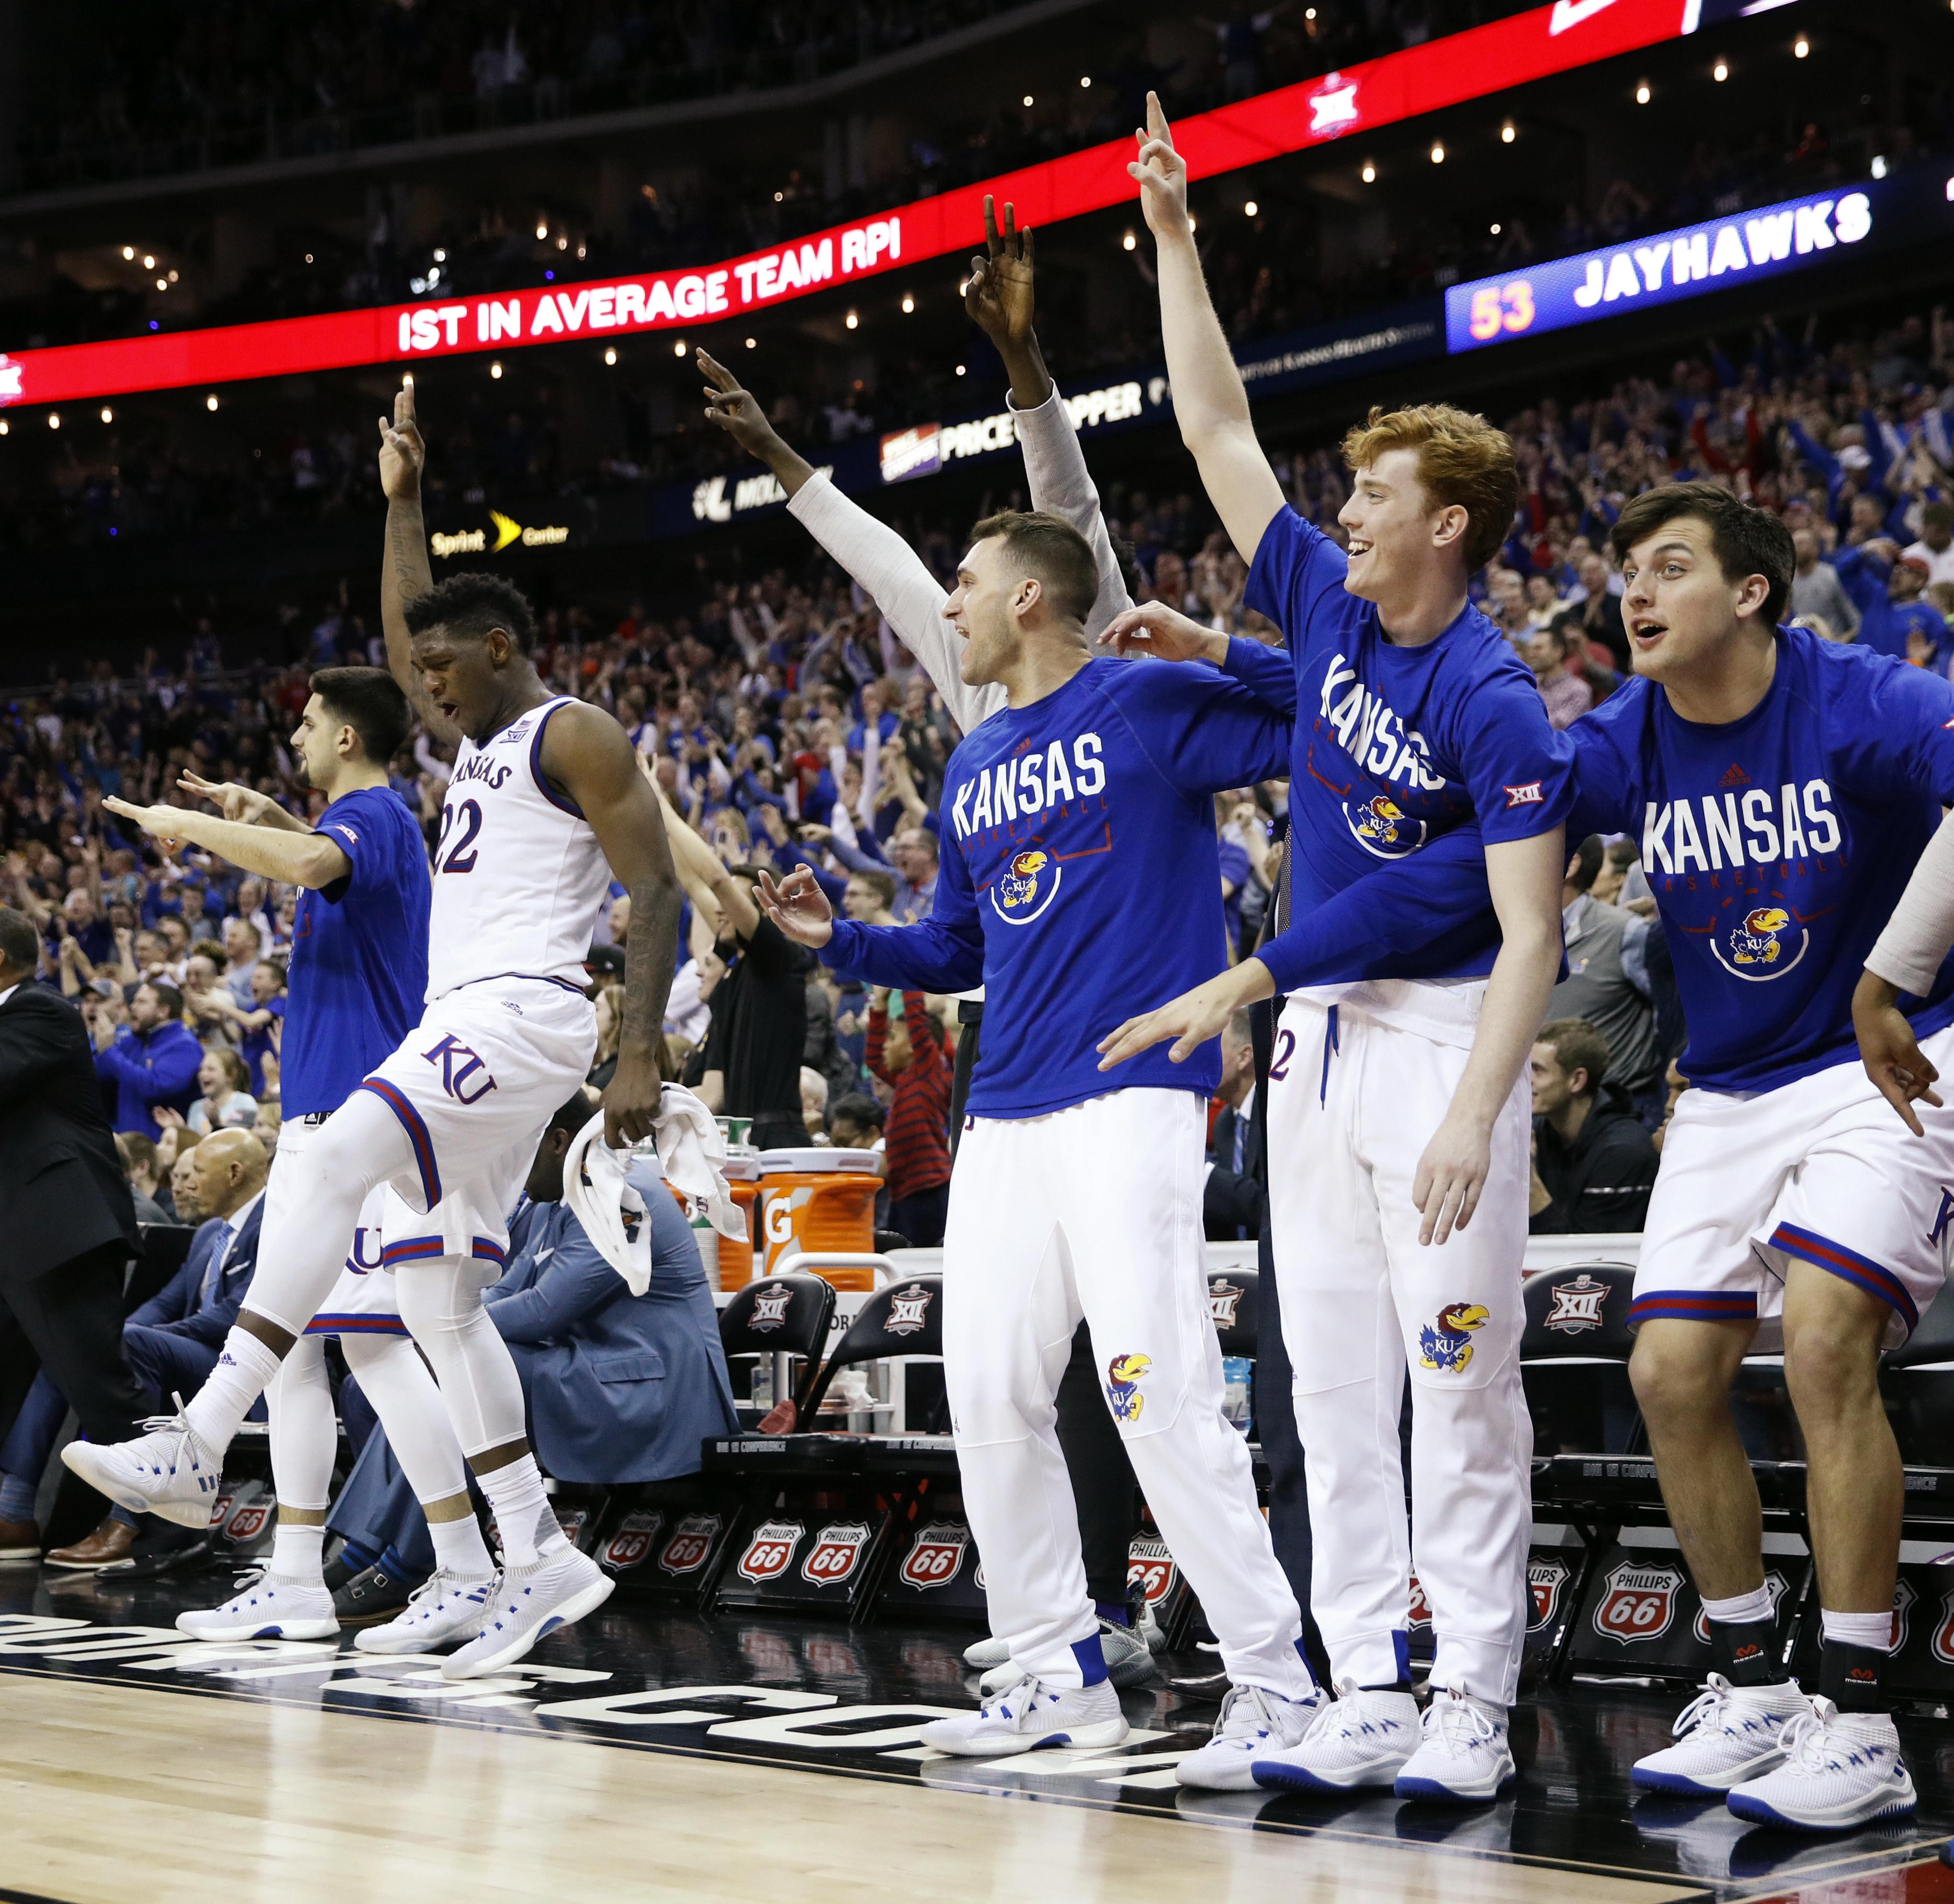 kansas players celebrate during the second half of the ncaa college basketball championship game against west